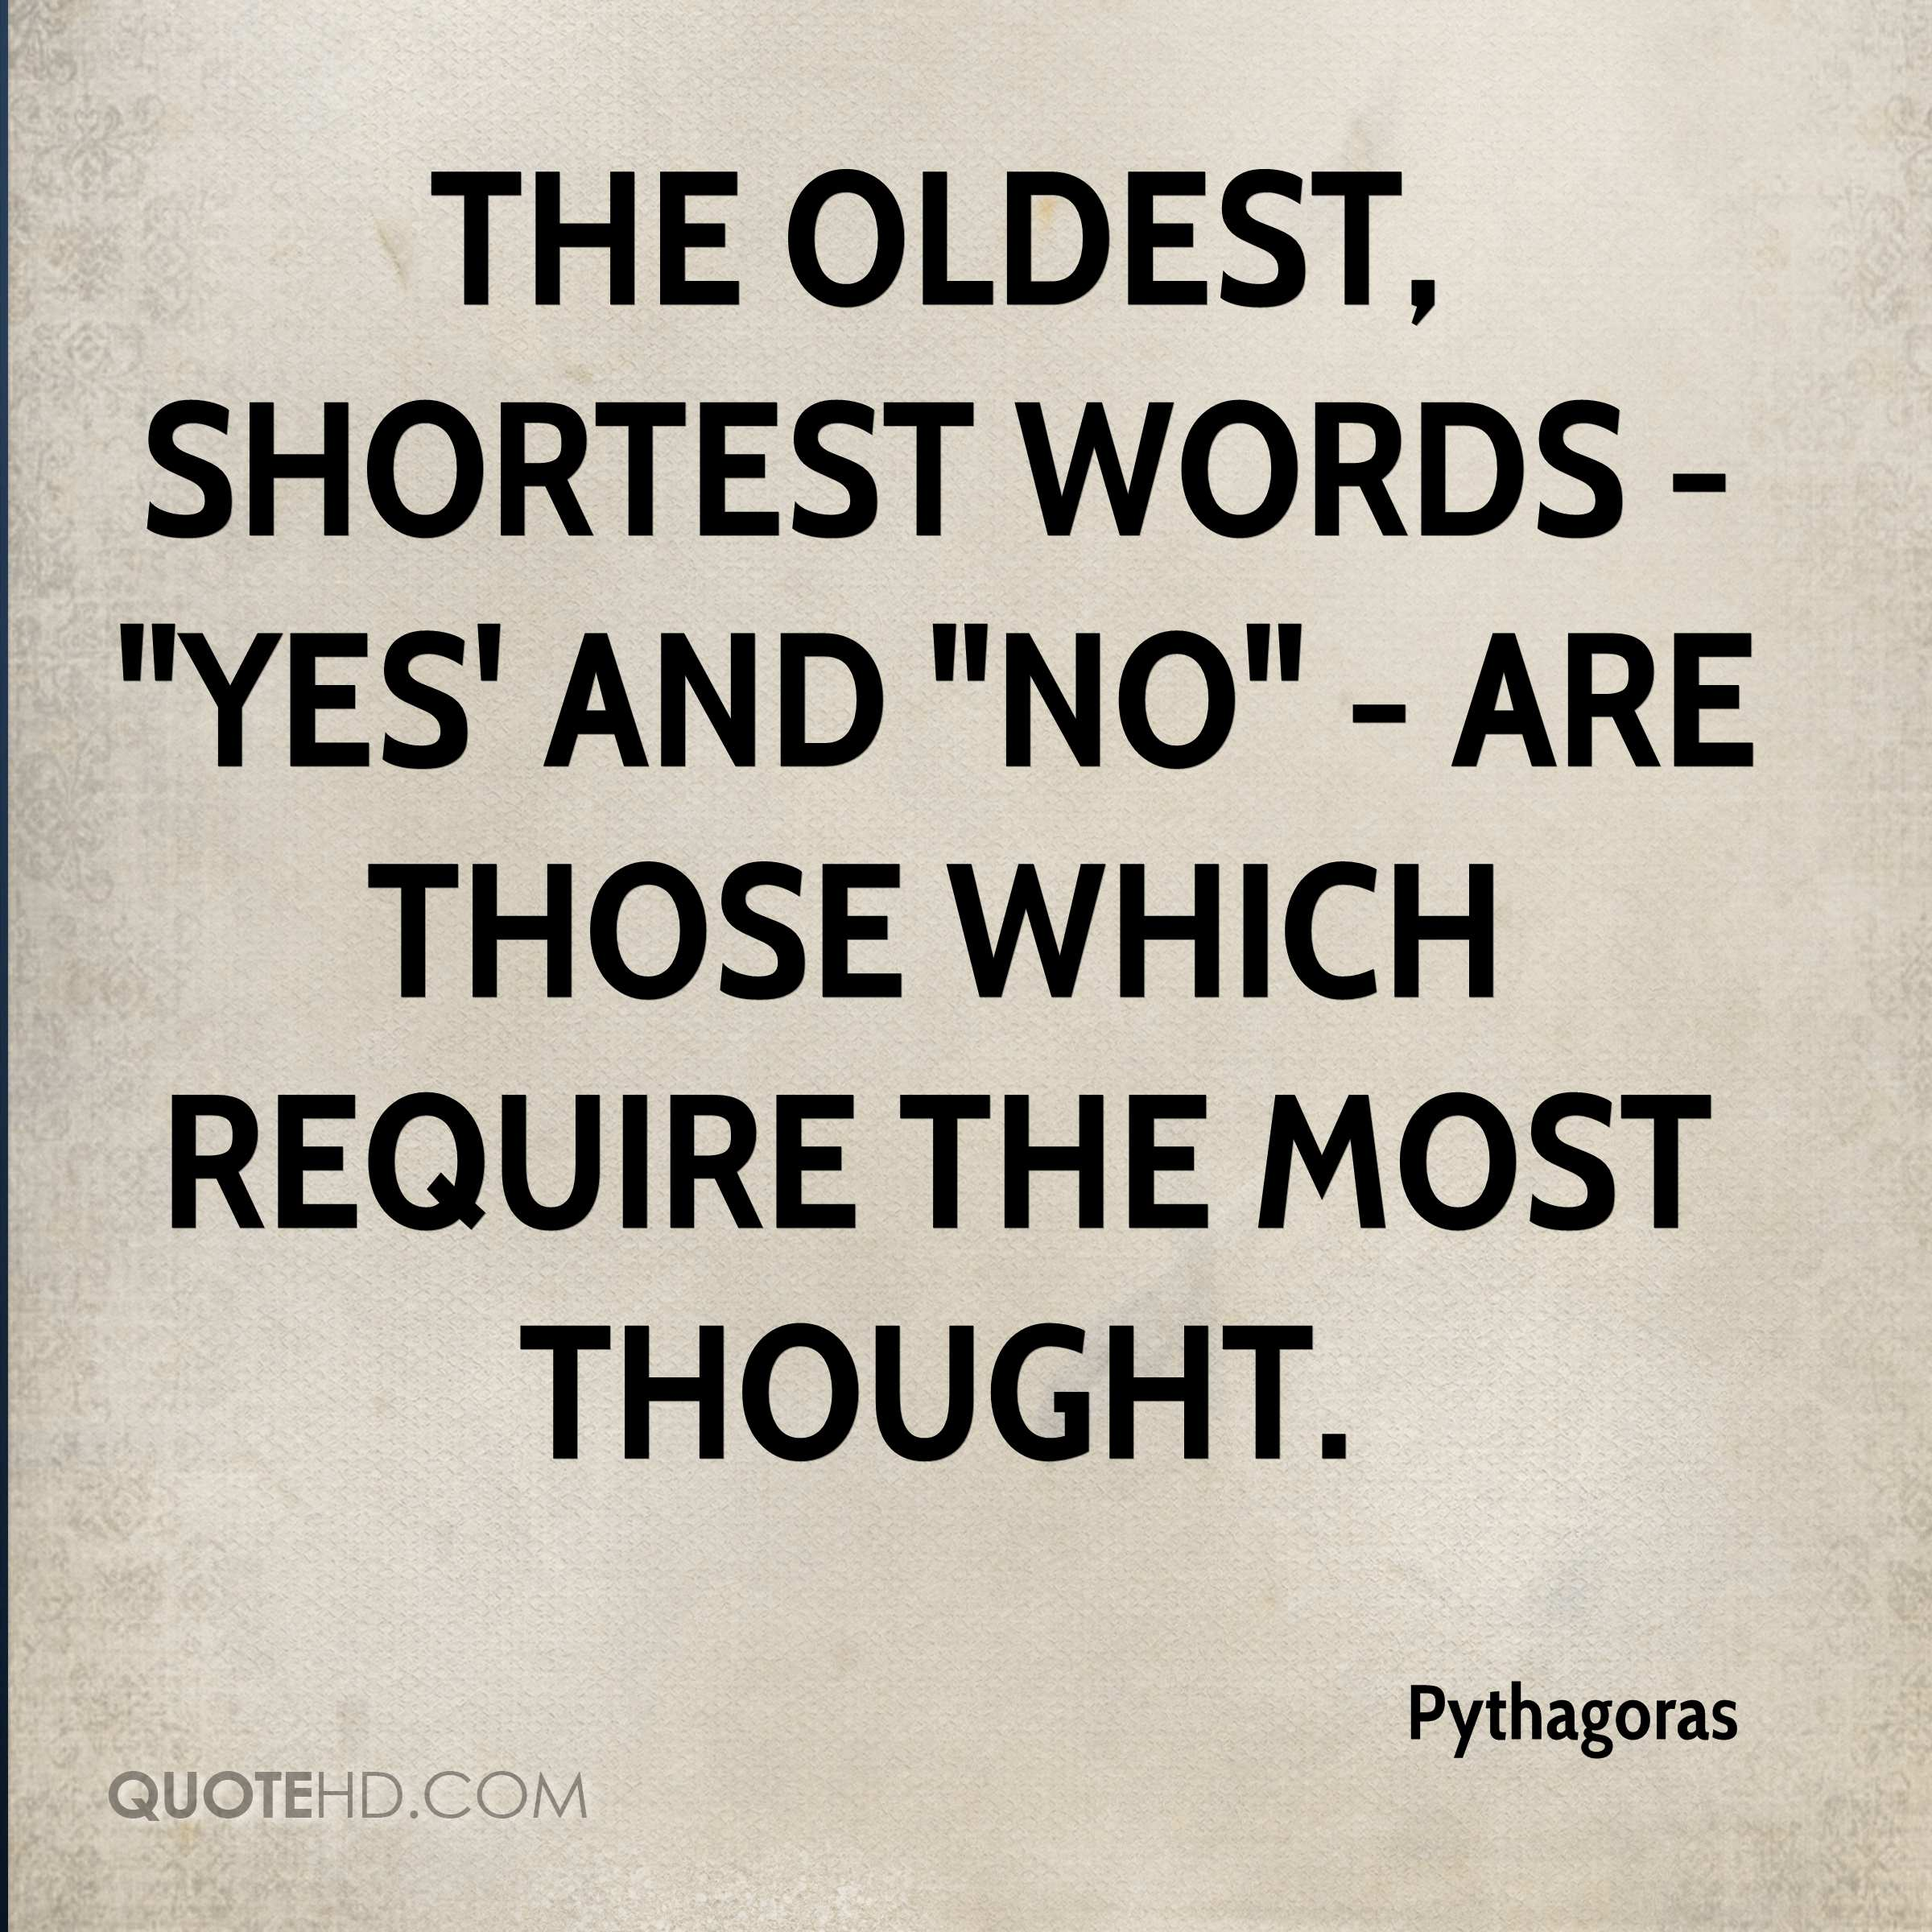 """The oldest, shortest words - """"yes' and """"no"""" - are those which require the most thought."""